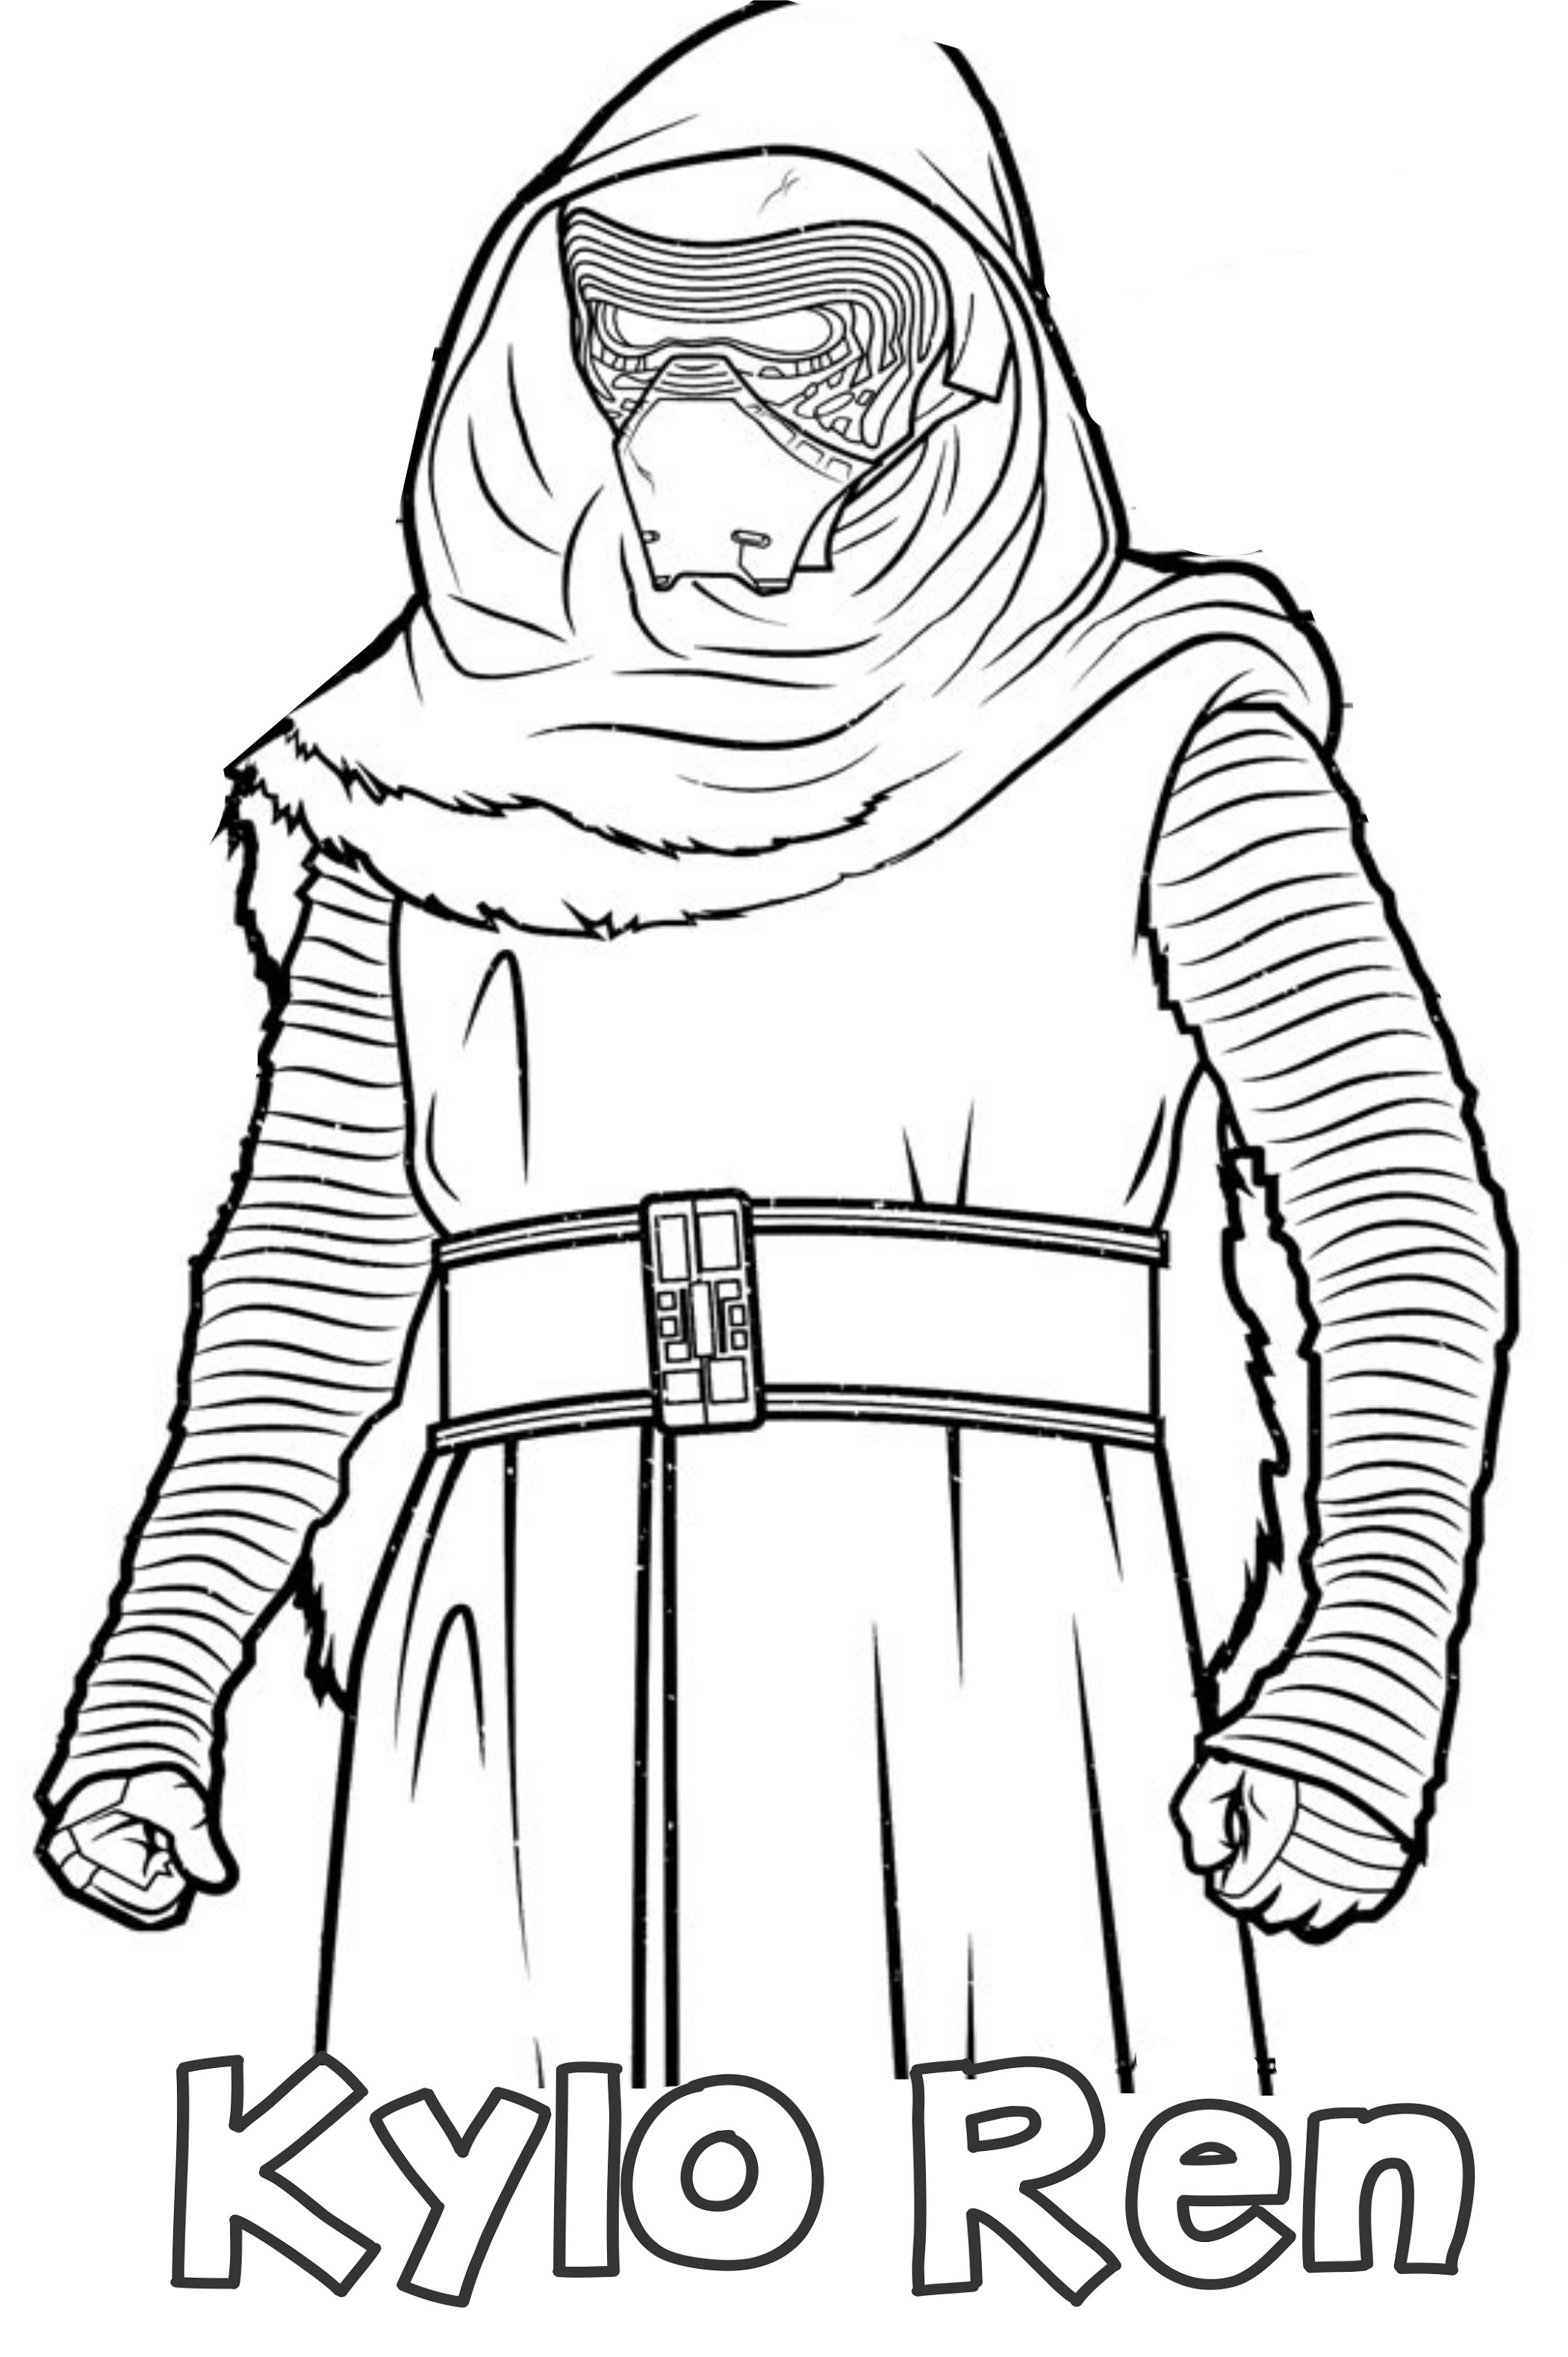 Kylo Ren Coloring Page Star Wars